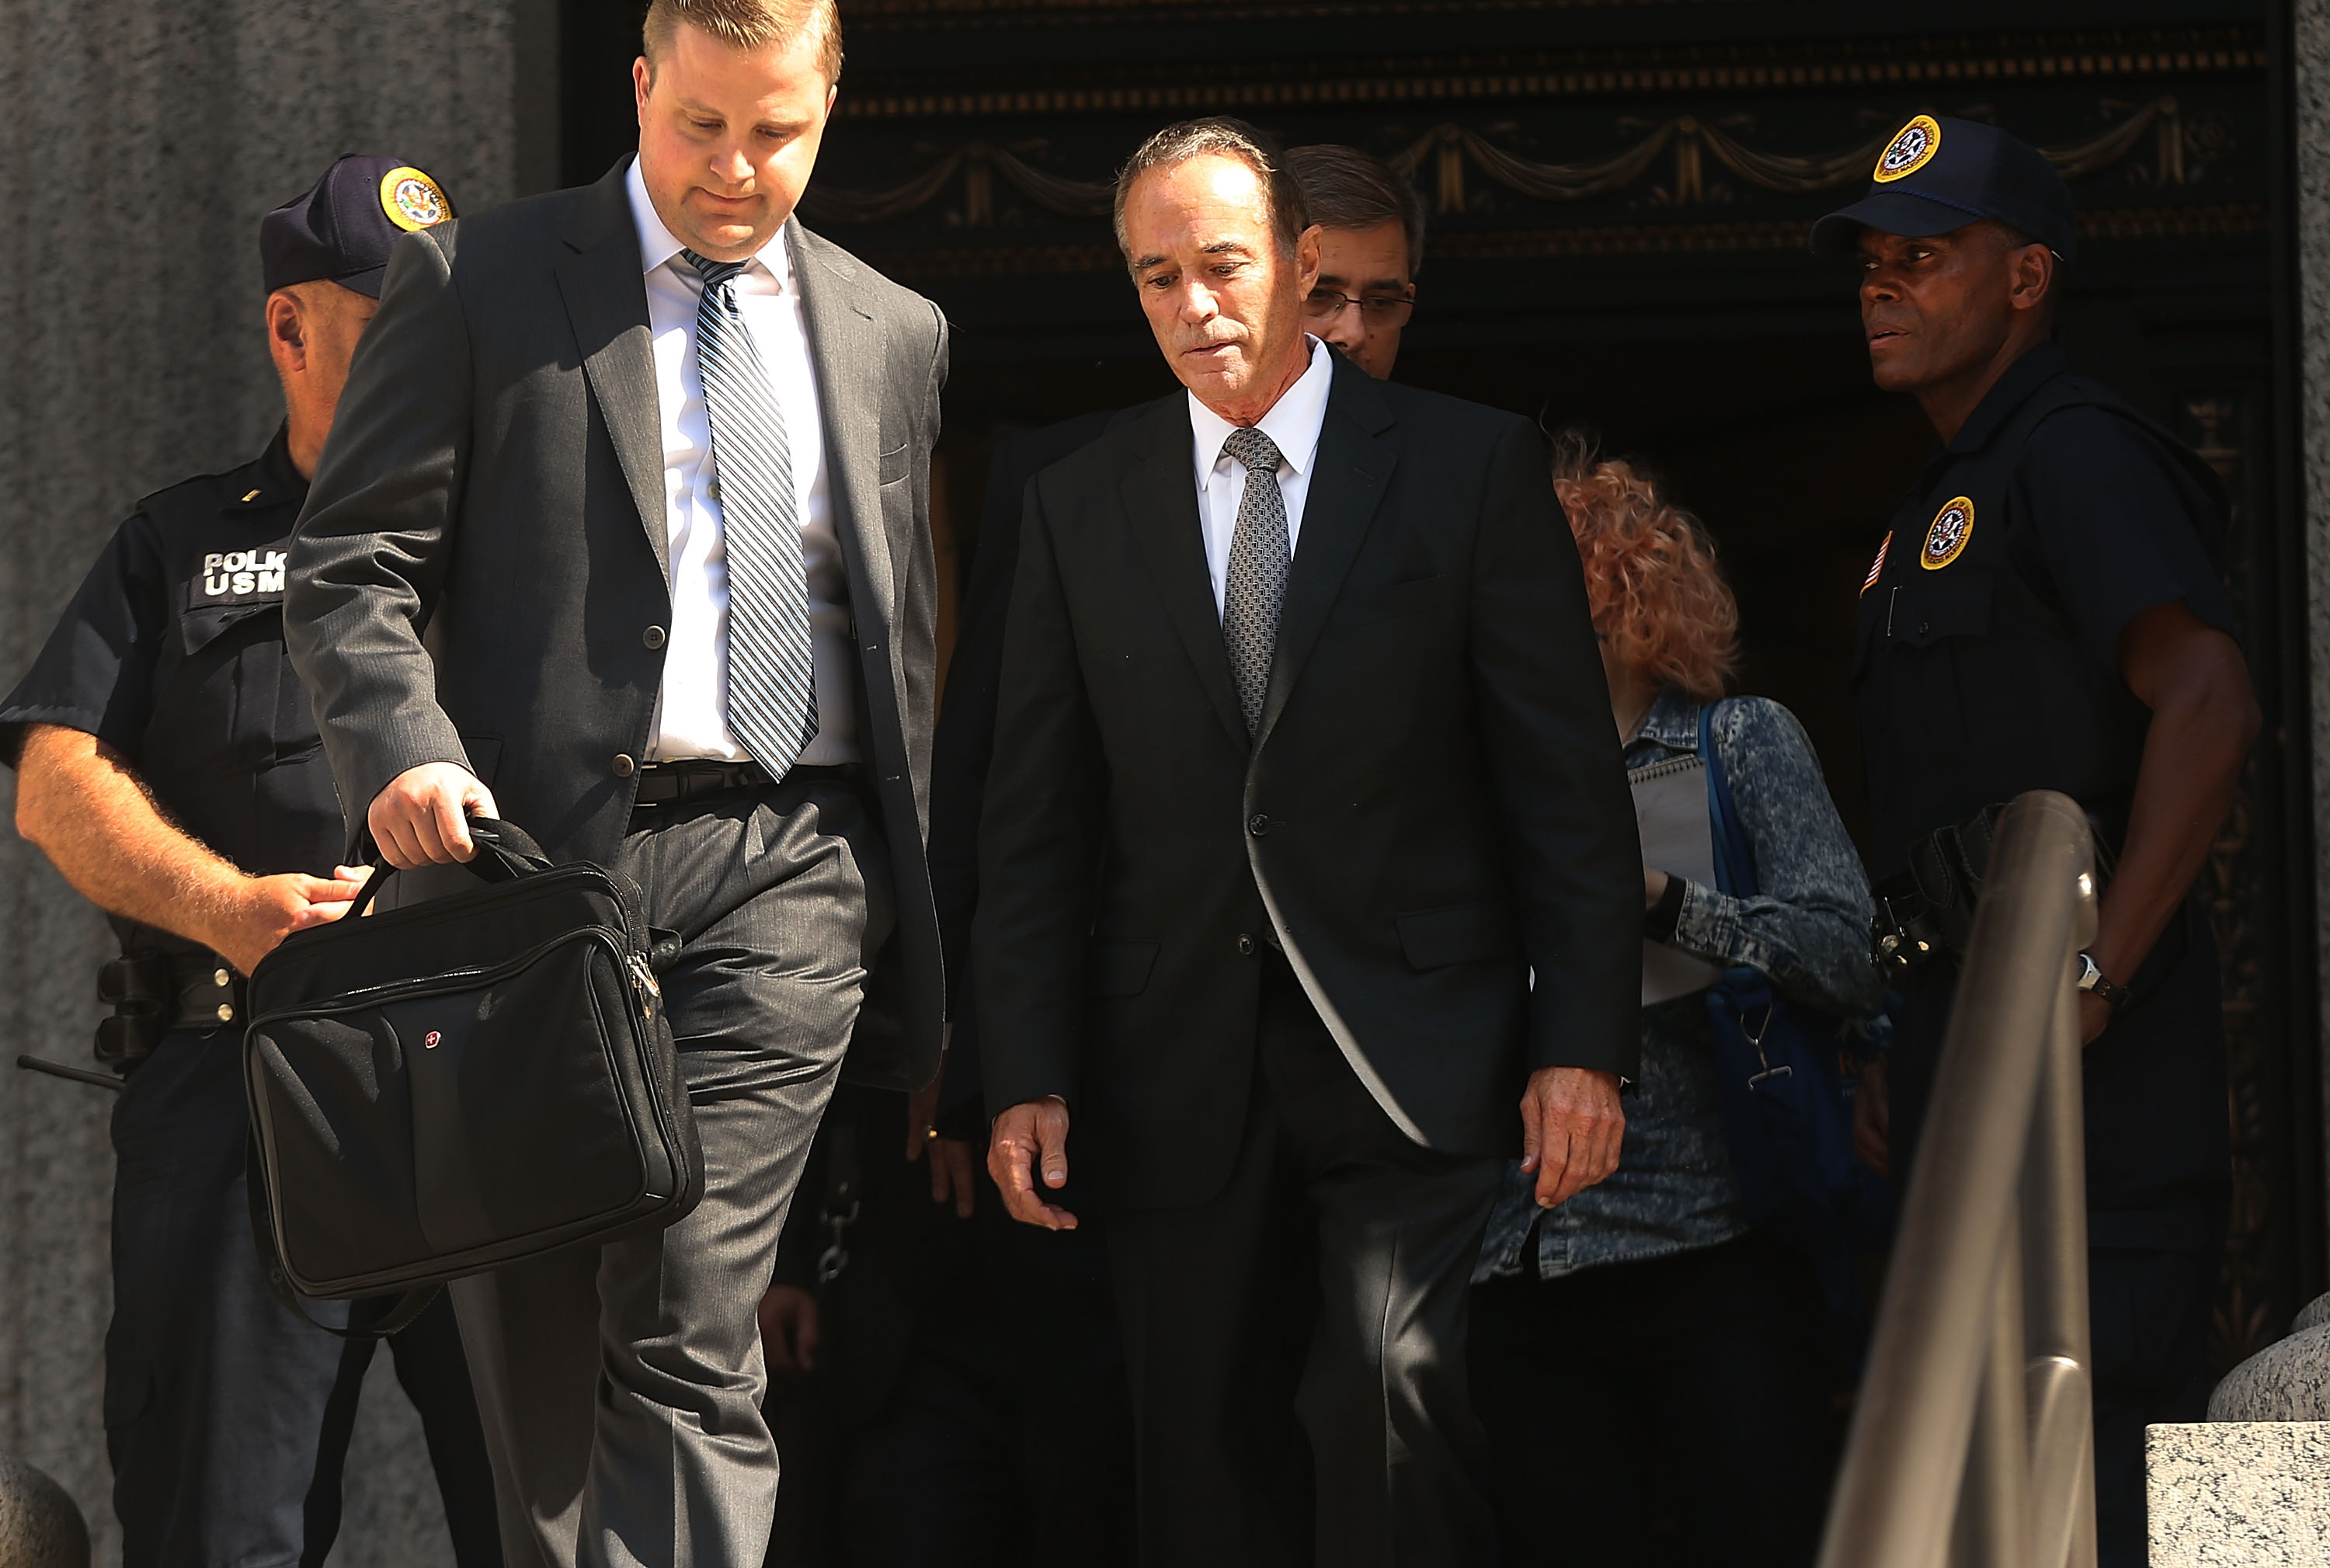 Rep. Chris Collins walks out of a New York court house after being charged with insider trading on August 8, 2018 in New York City. (Photo by Spencer Platt/Getty Images)